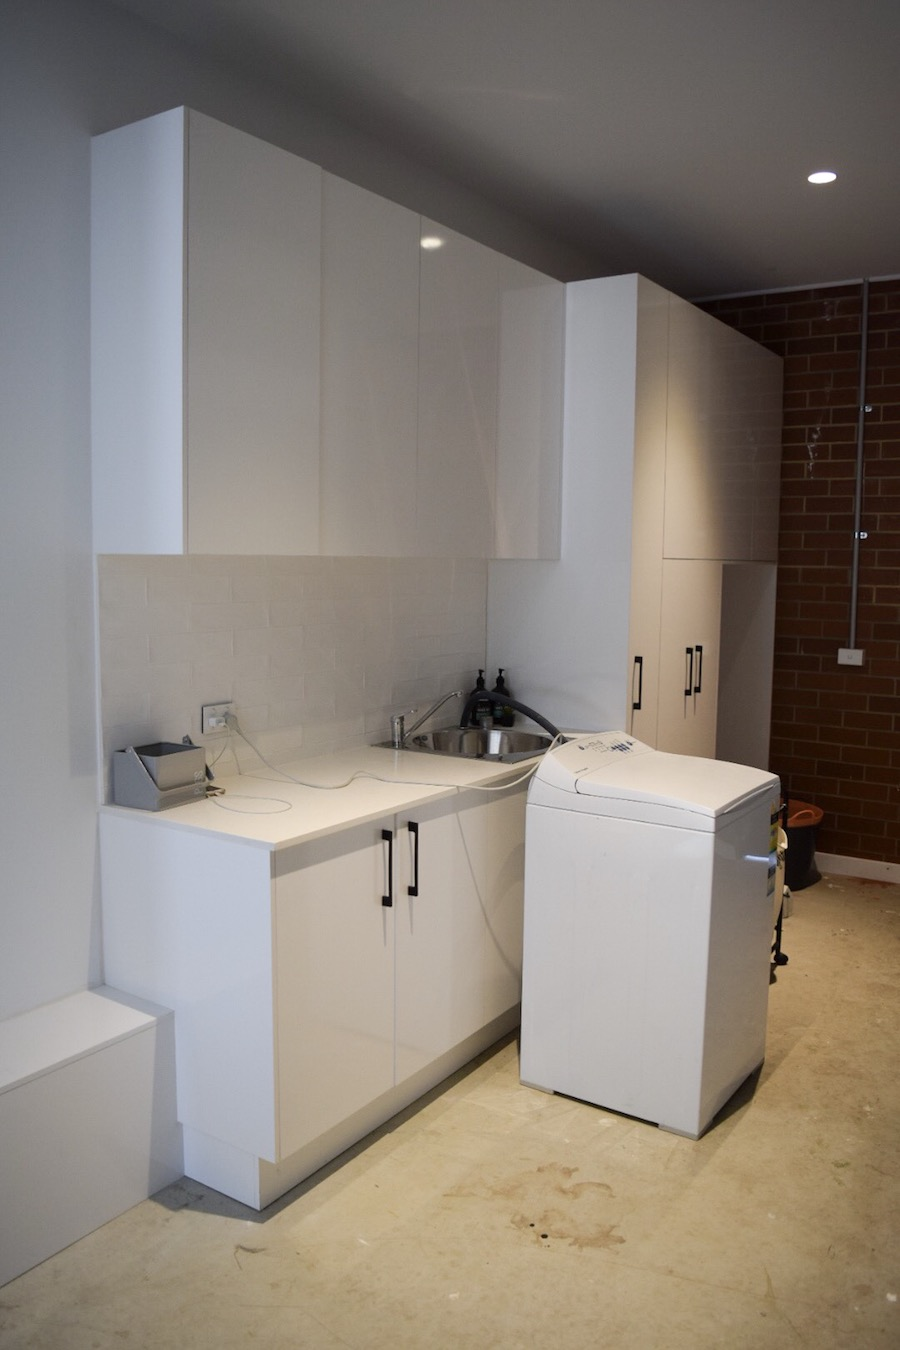 Laundry cabinetry